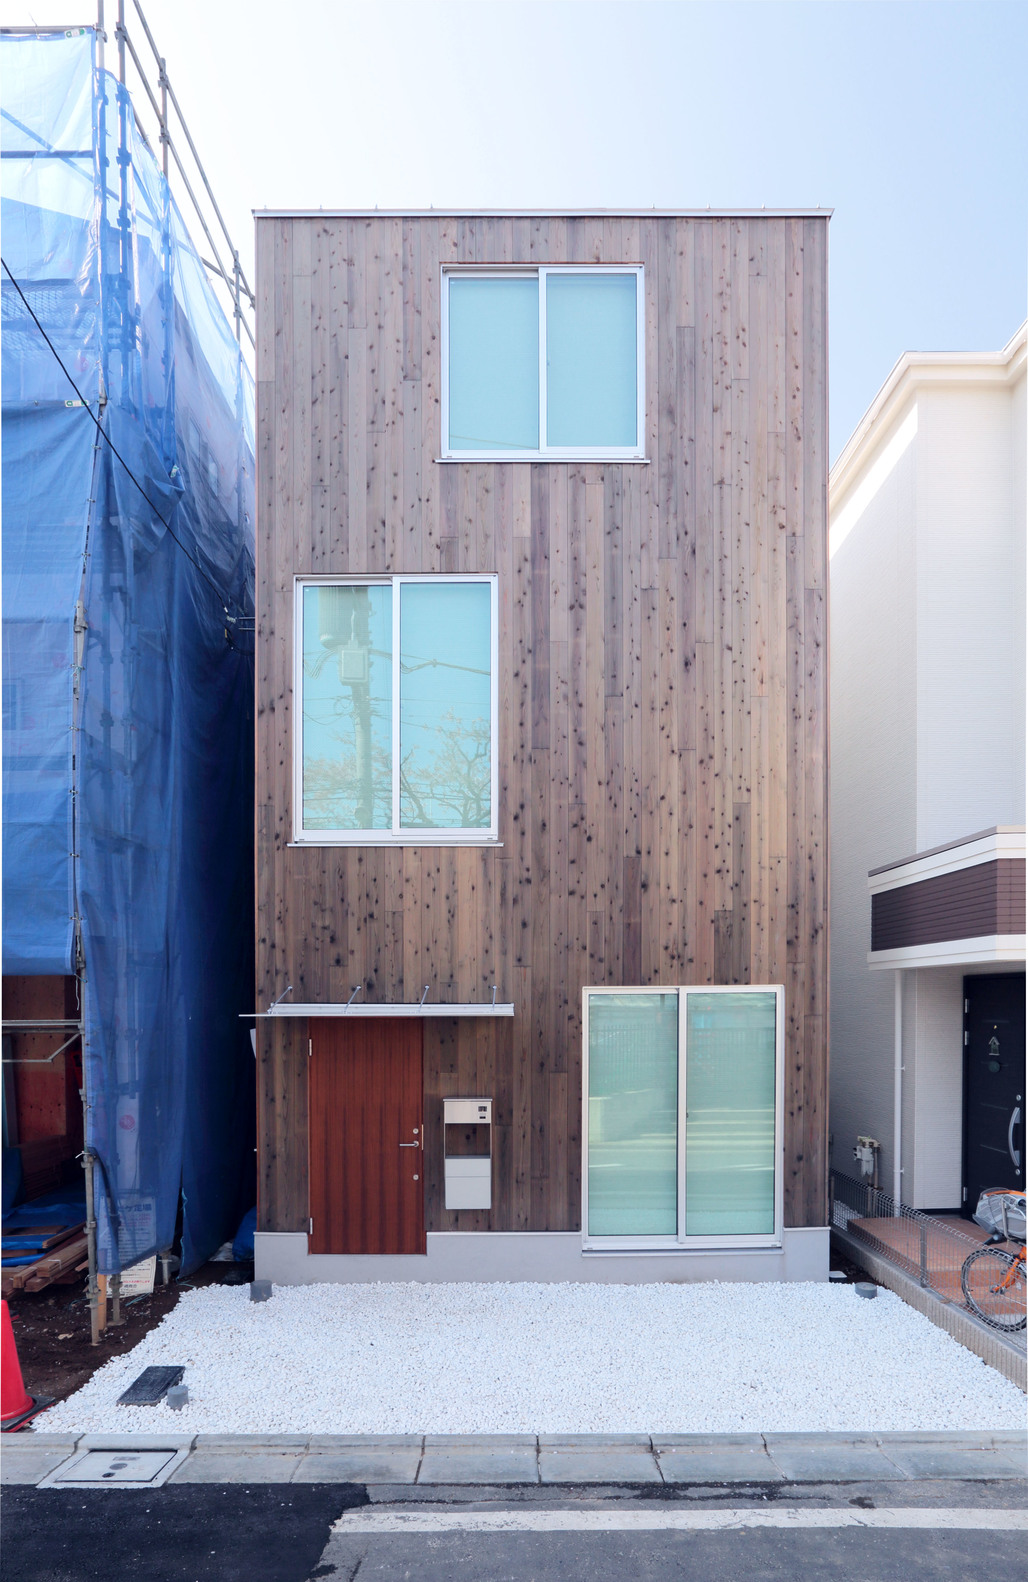 Vertical House, the latest prefab model by Japanese design brand Muji. Photo courtesy of Muji